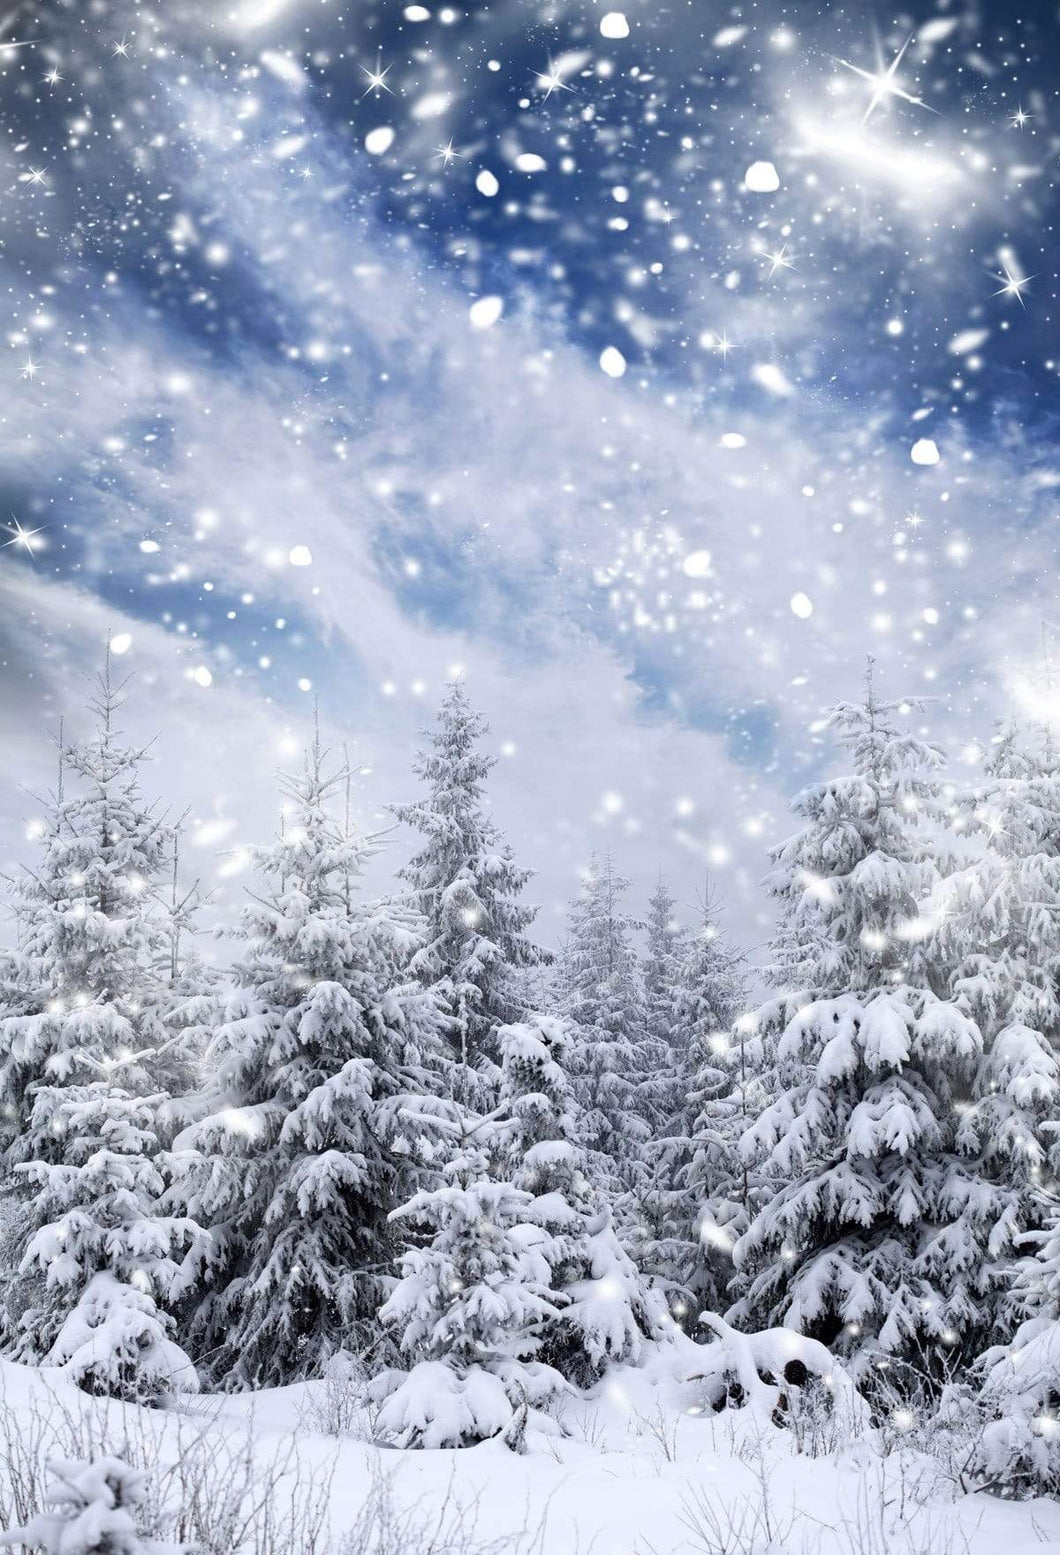 Katebackdrop£ºKate Winter Wonderland Forest With Snowflakes for Photography